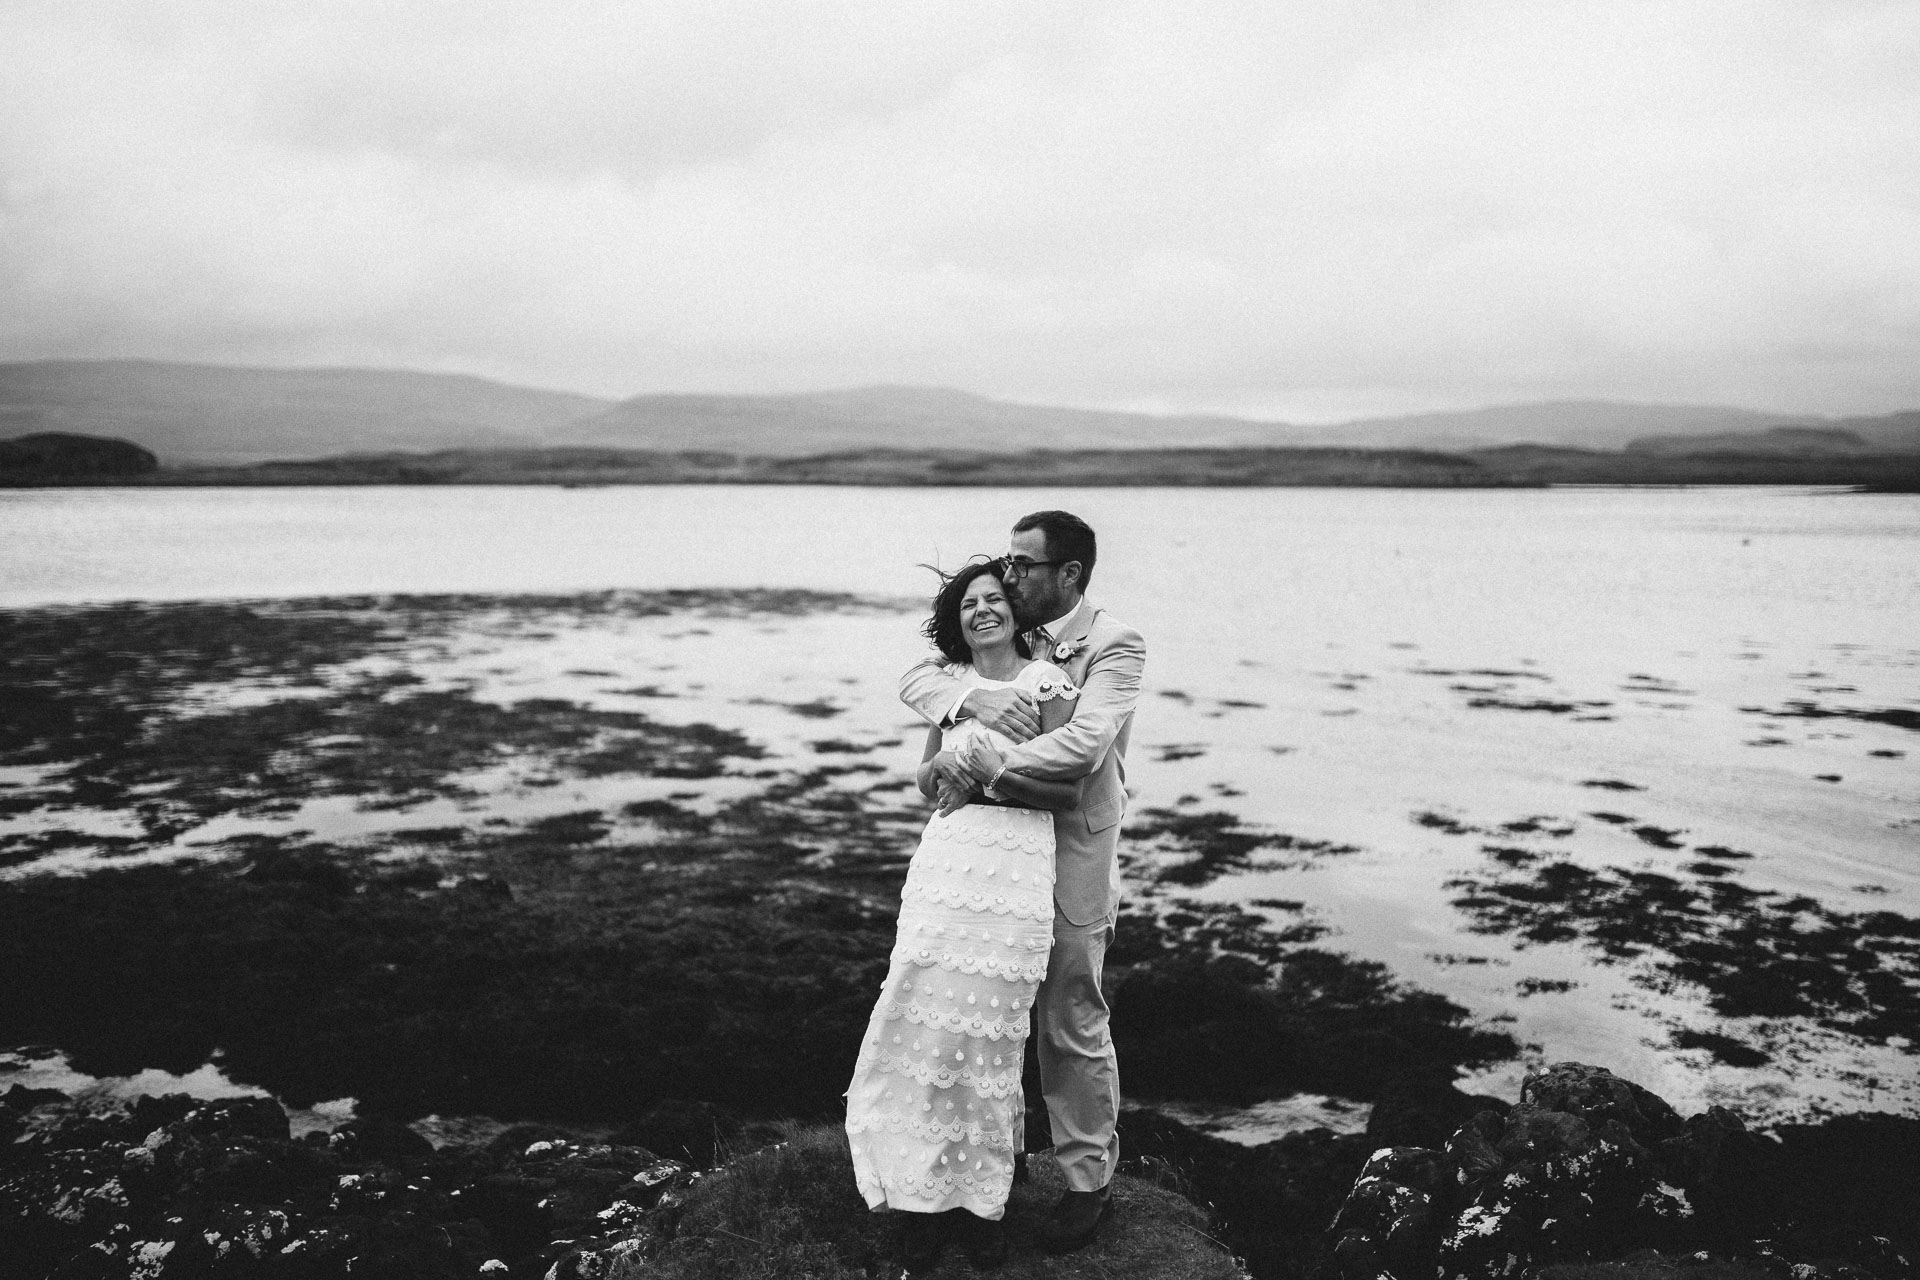 Megan_Matt_Elopement_IntimateWedding_Scotland_IsleOfSkye_JeanLaurentGaudy_115